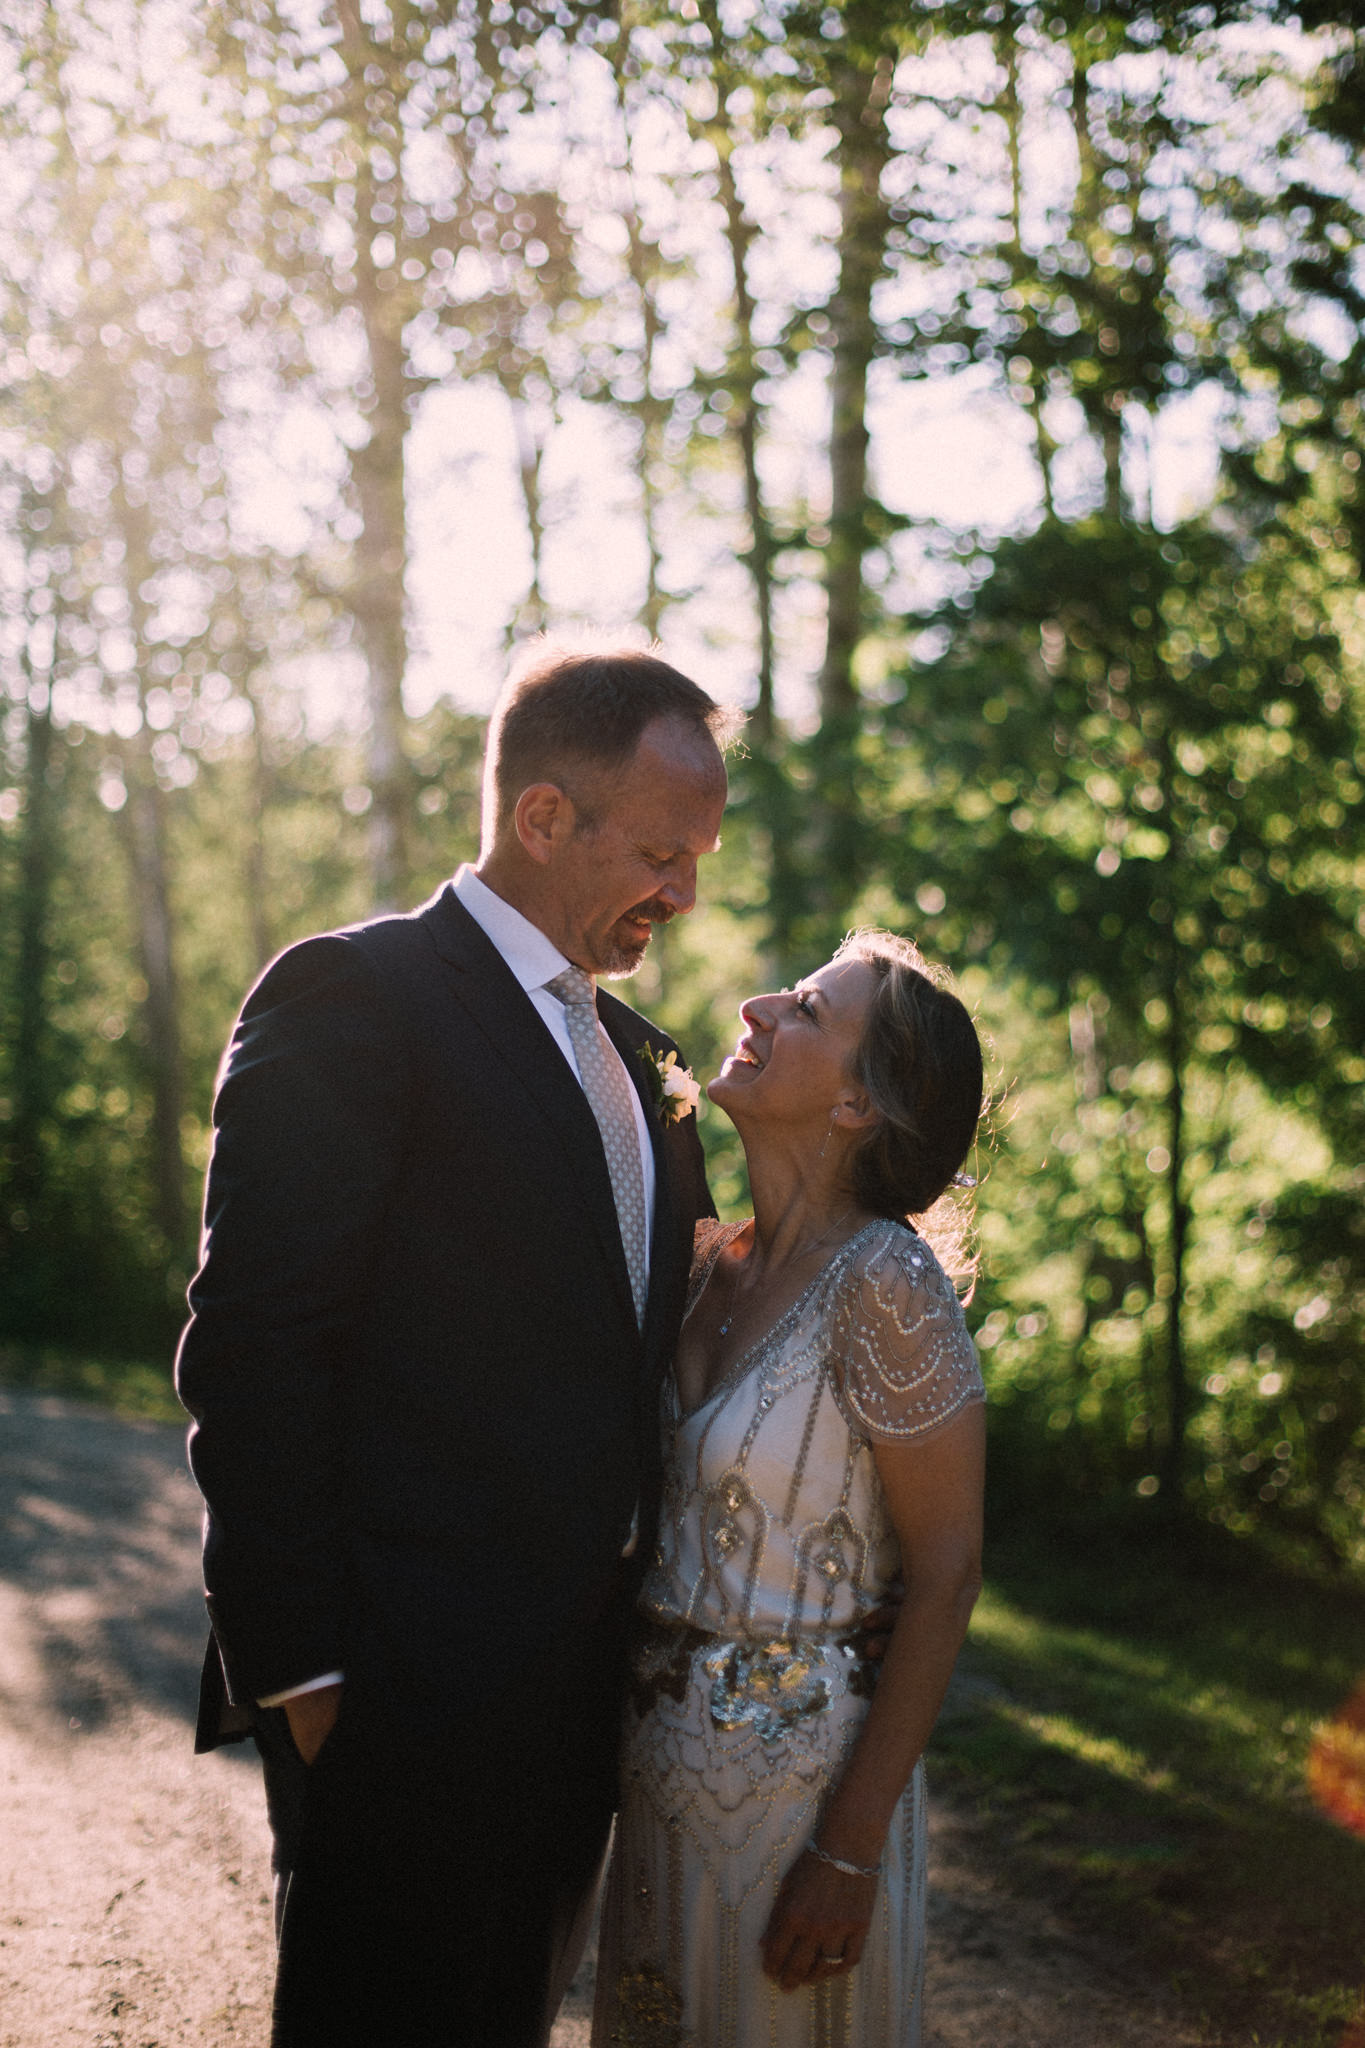 Orillia intimate summer wedding at Ficklewood Farm by Max Wong Photo (34)